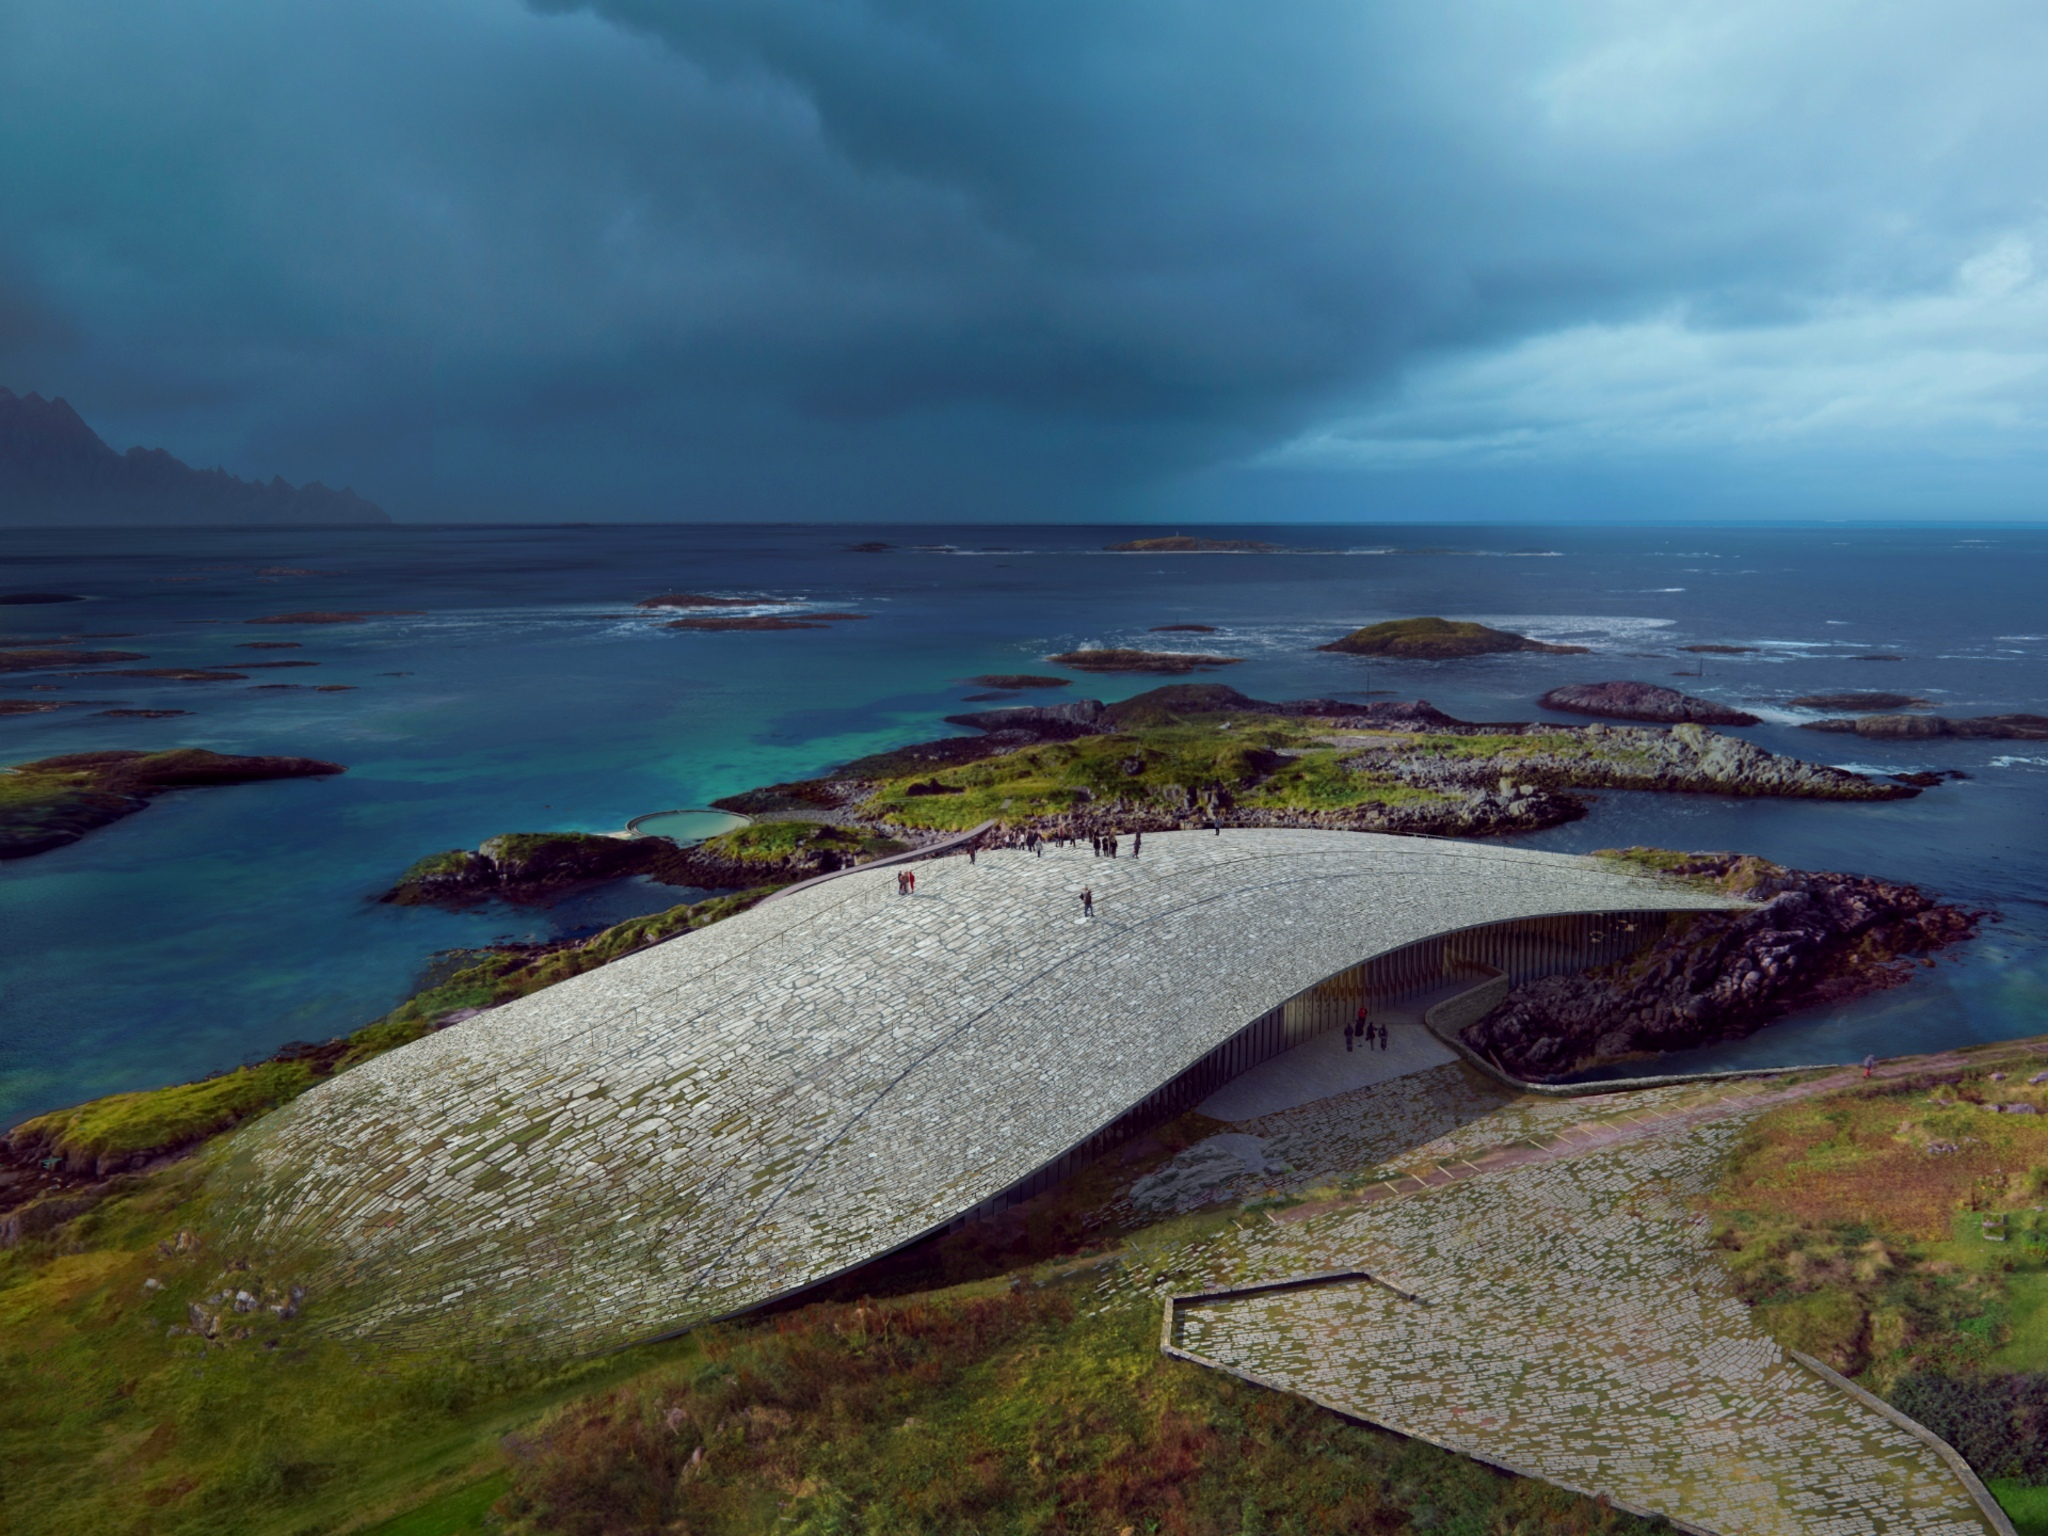 Norway is building an epic whale-watching museum in the Arctic Circle